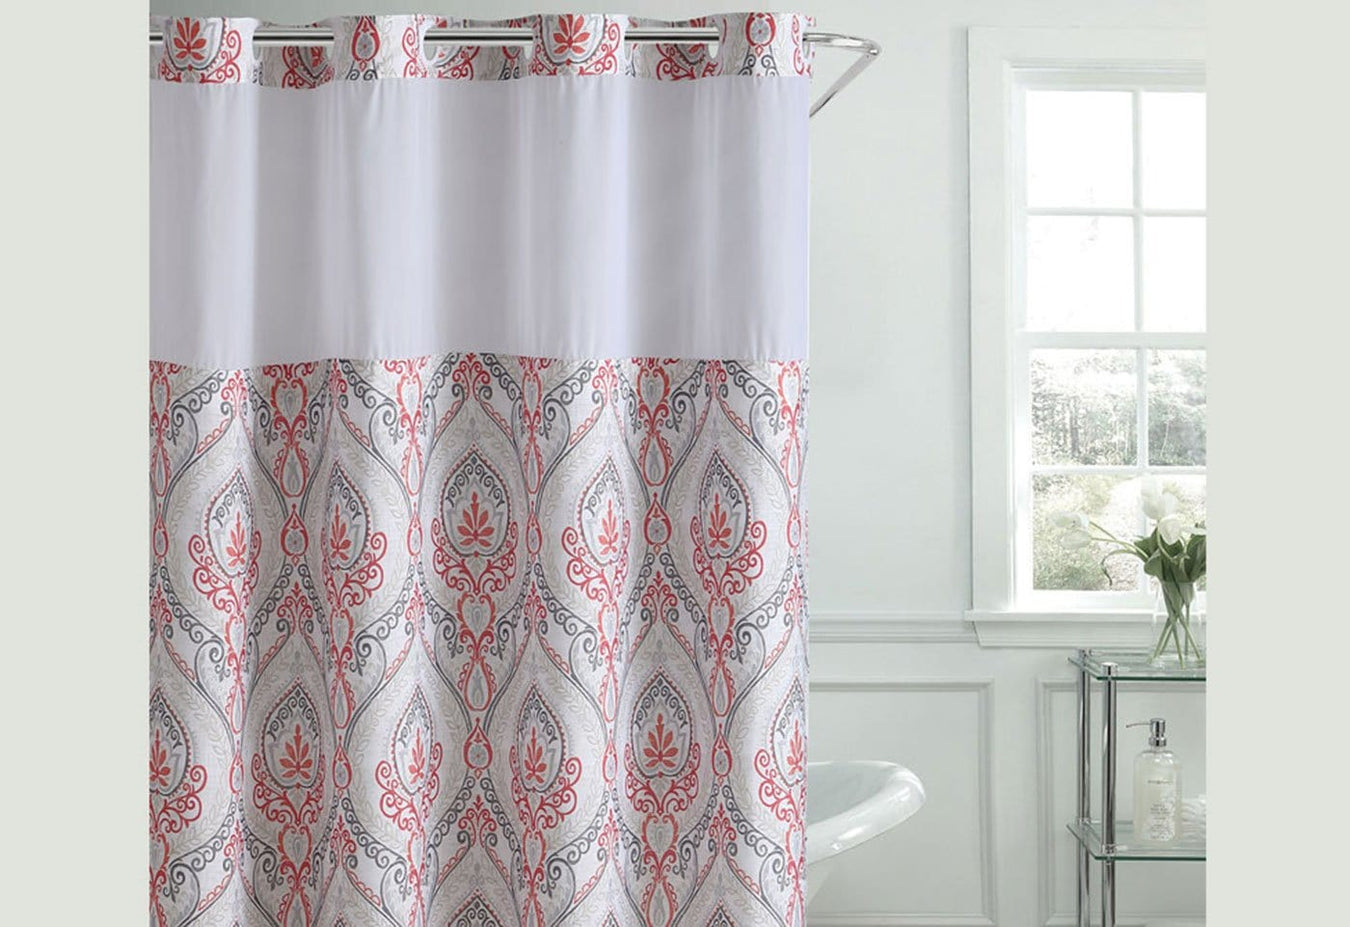 Hookless 174 French Damask Print Shower Curtain Surefit